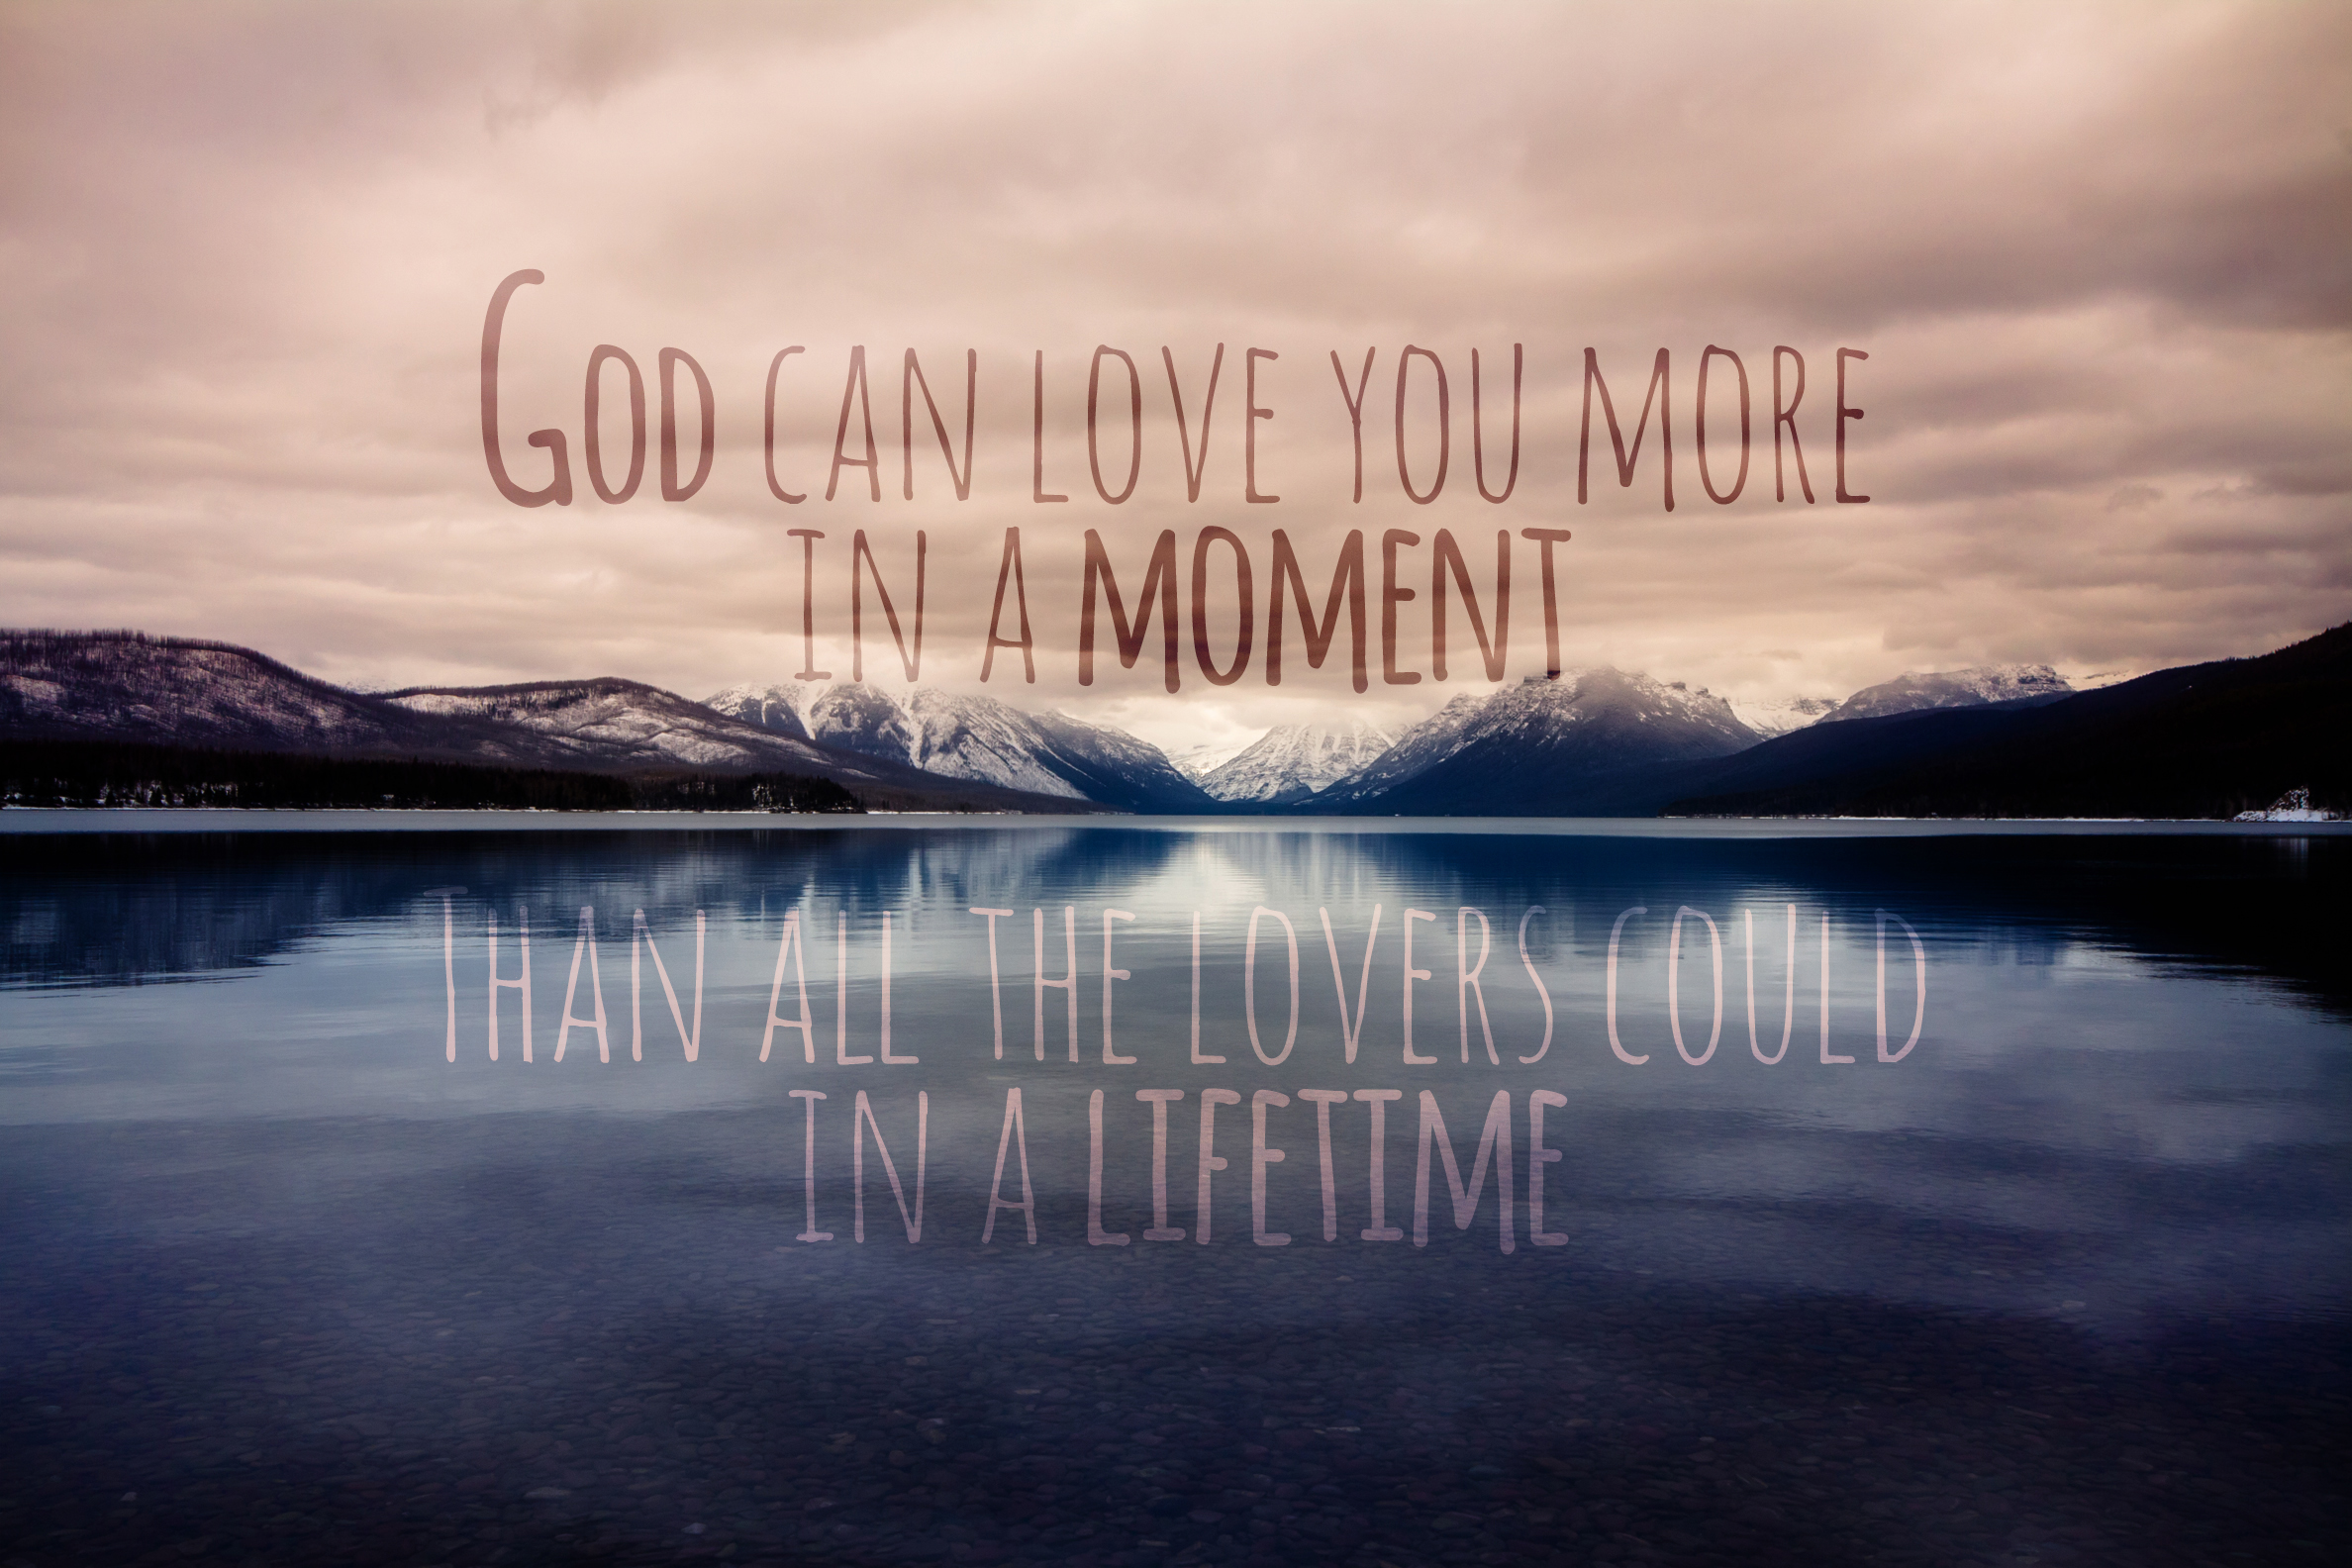 god-can-love-you-more2.jpg